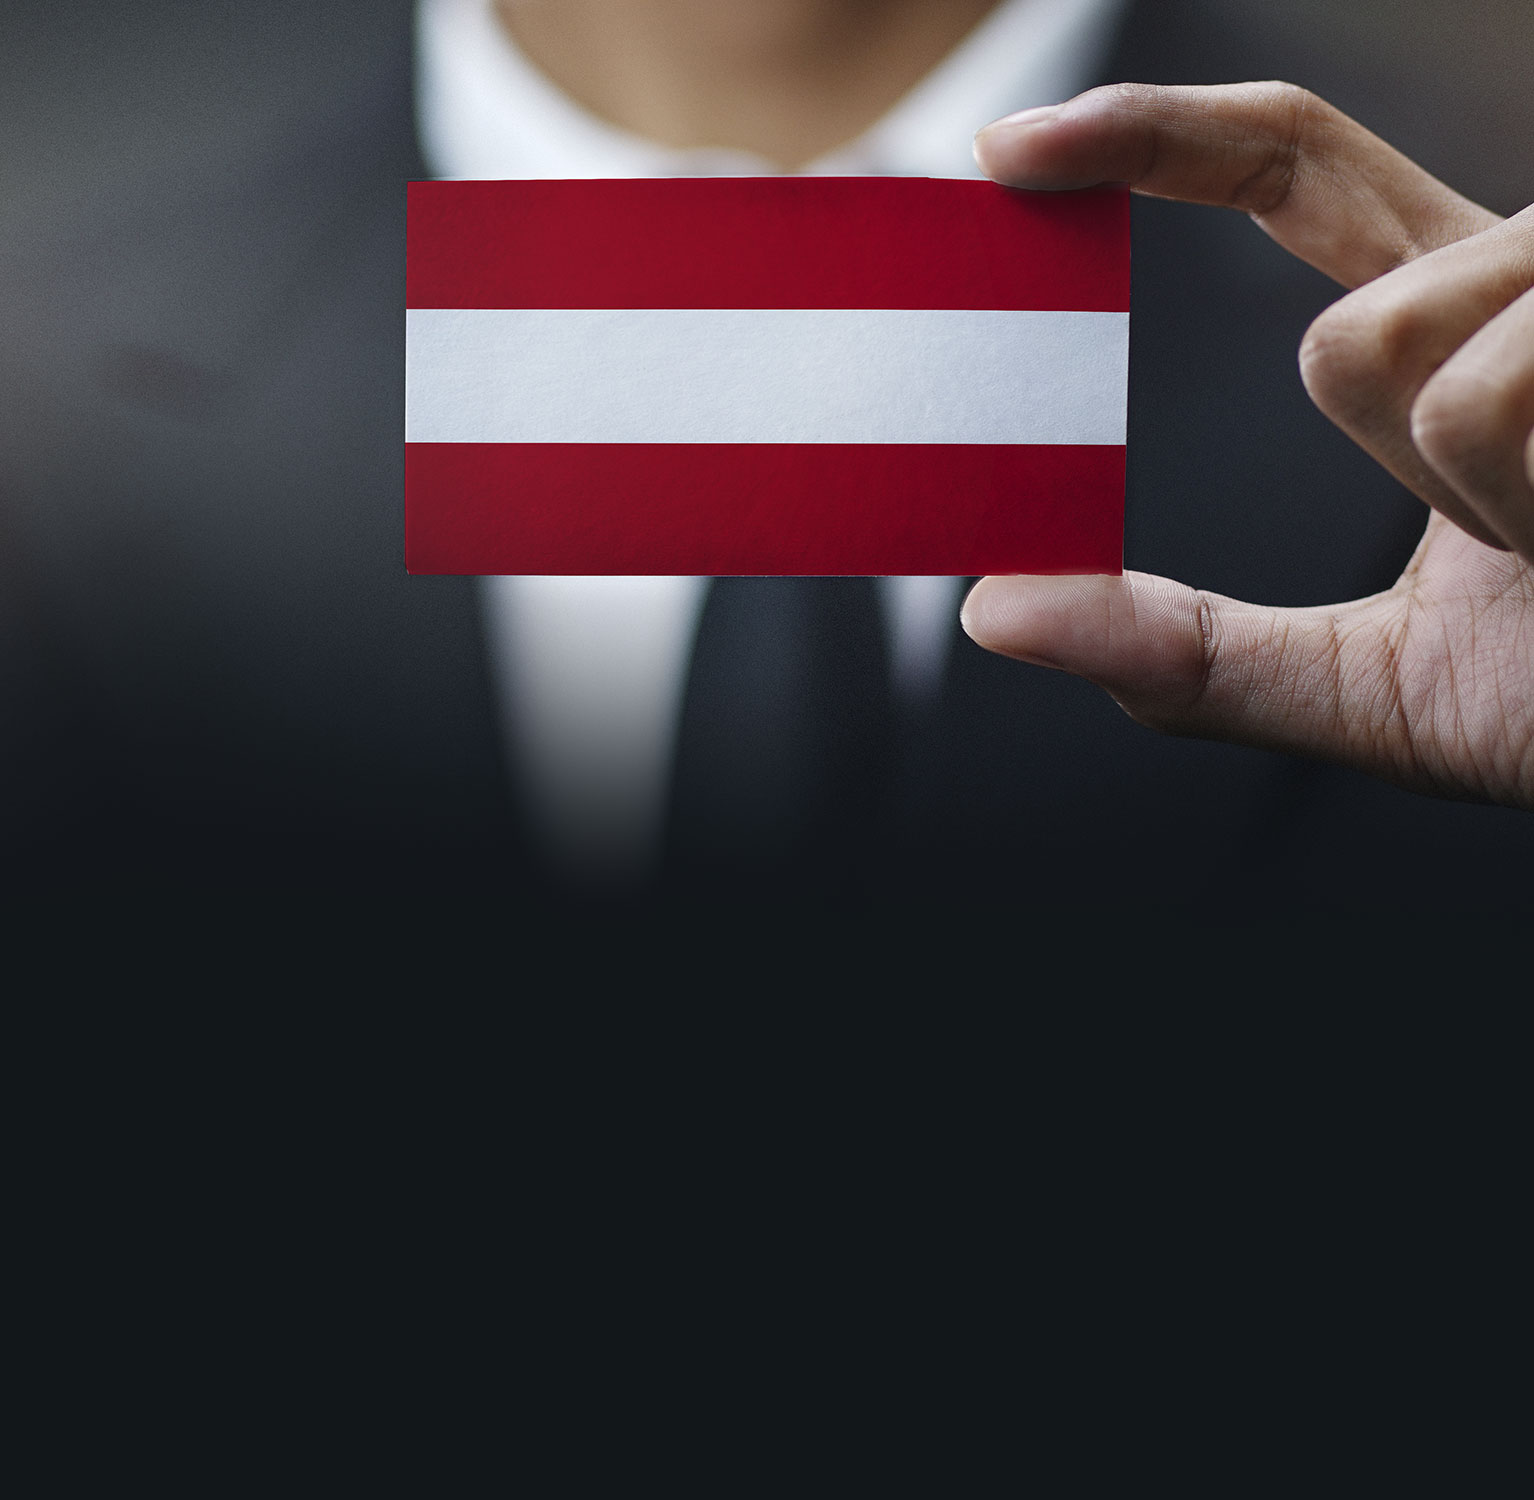 Business professional holding up an Austrian flag themed card